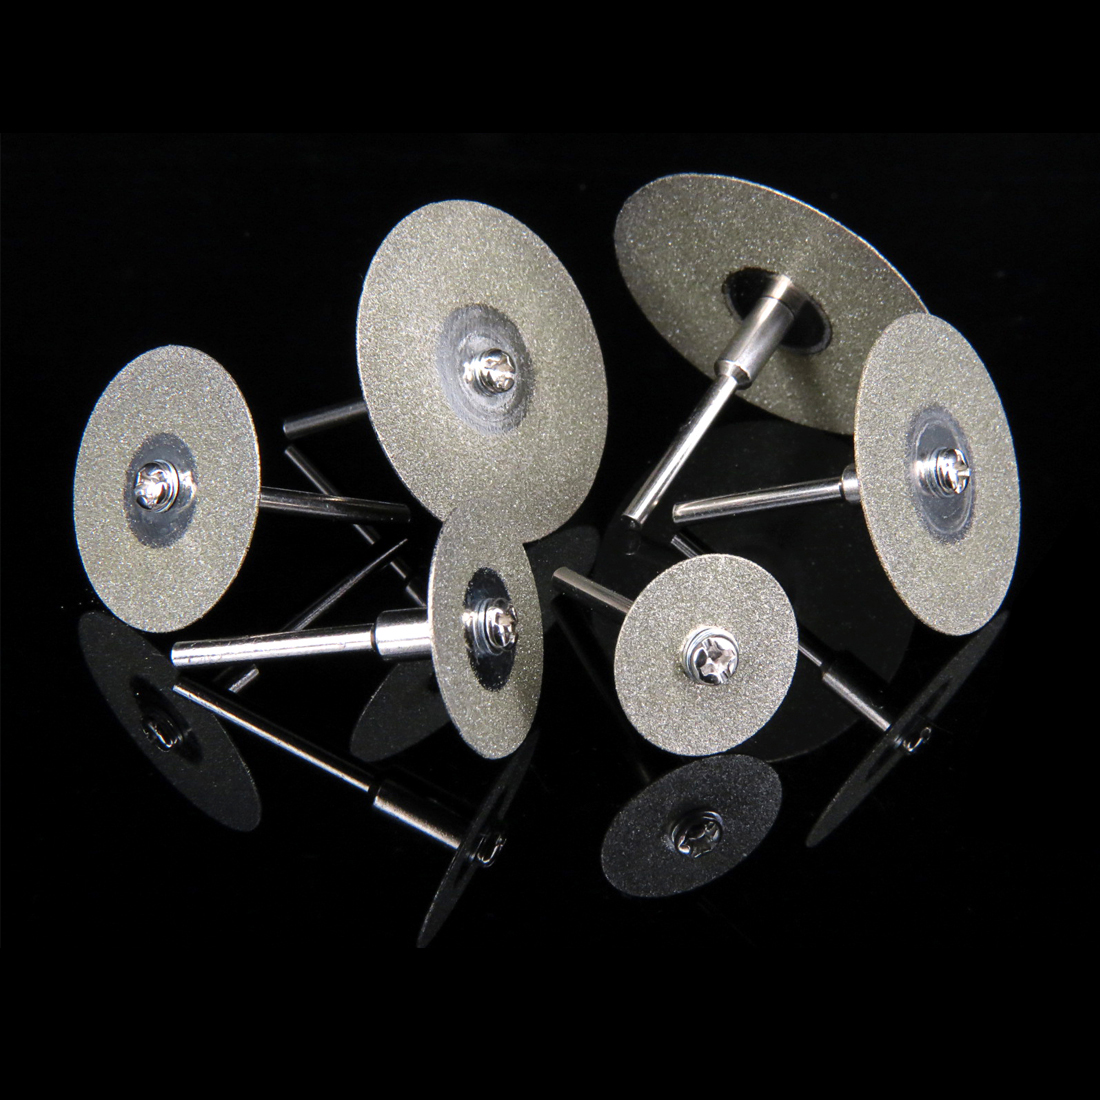 Accessories Diamond Grinding Wheel Saw Mini Circular Saw Cutting Disc Rotary Tool Diamond Disc For Dremel Rotary Tools